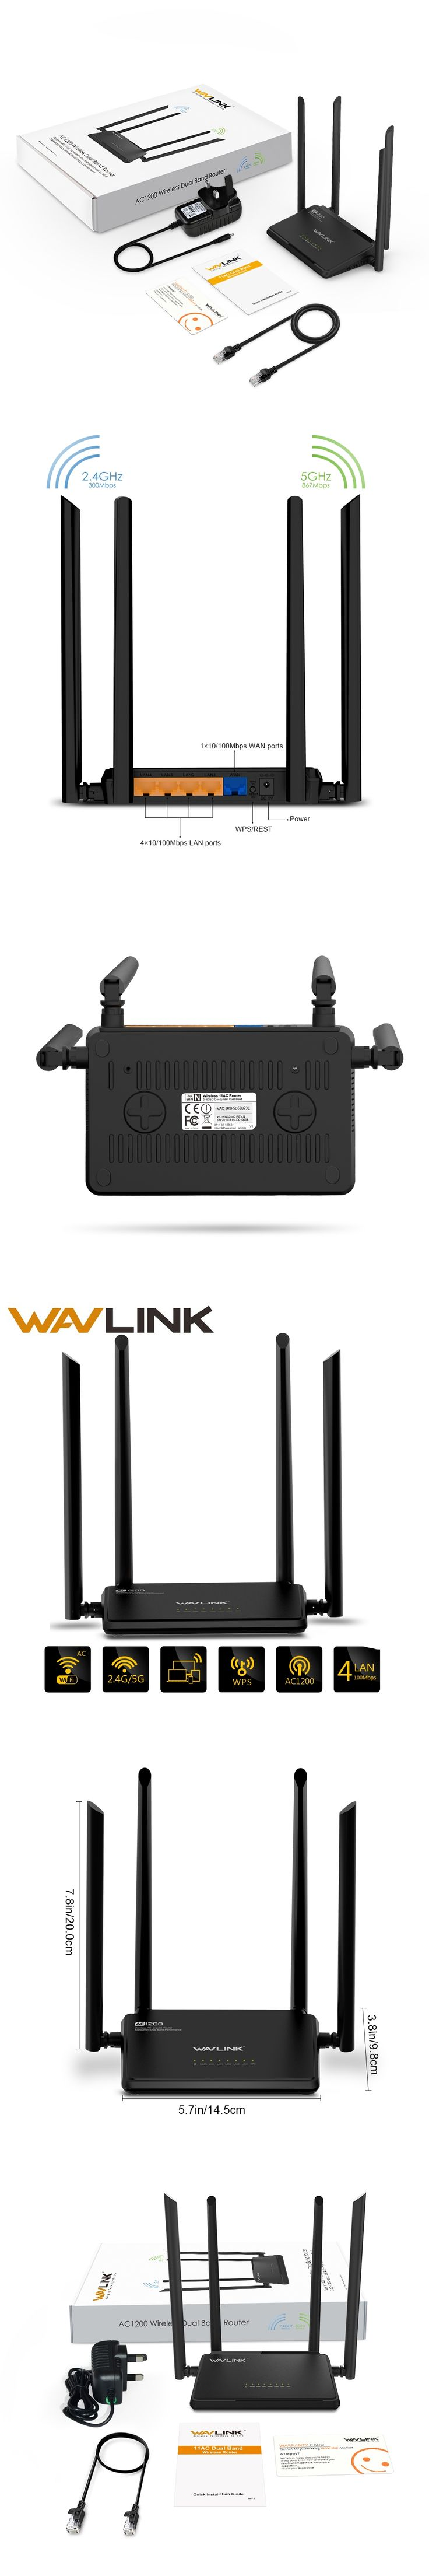 Wavlink AC1200 High Power Wireless Wifi Dual Band Router 2.4GHz Wifi Router Repeater 5ghz with 4*5dBi High Gain External Antenna